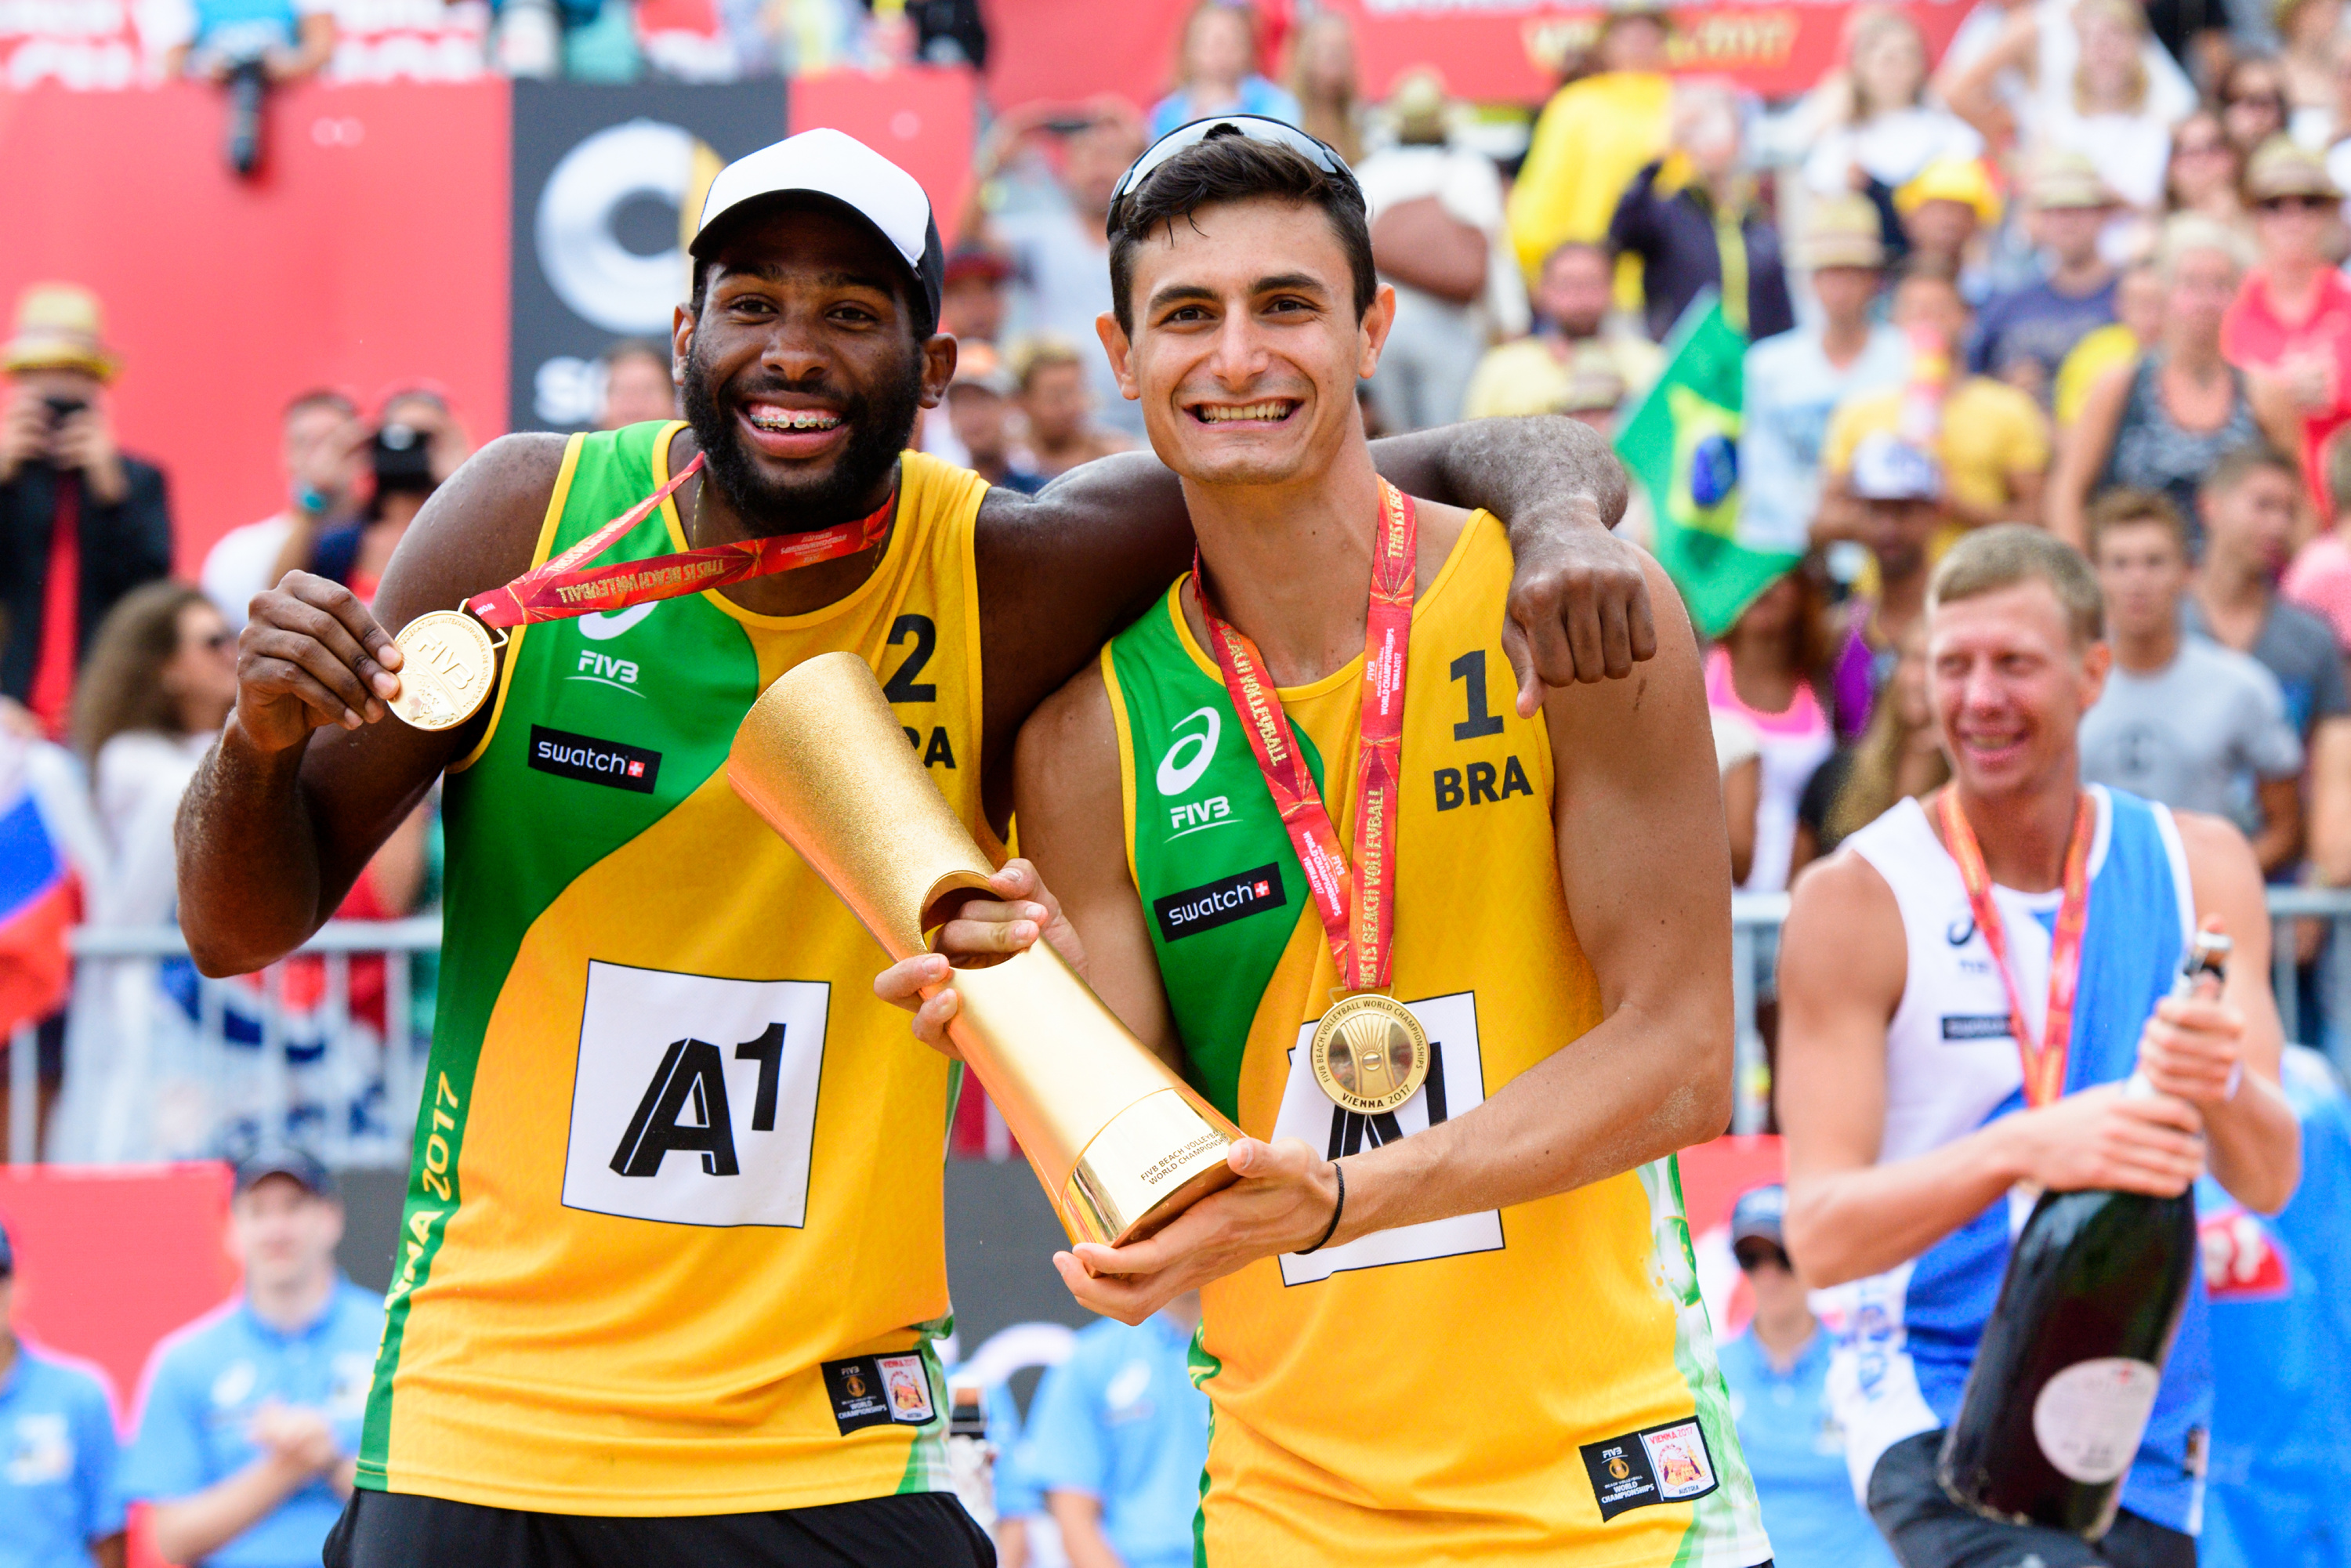 Bruno and Evandro team up for Tokyo 2020